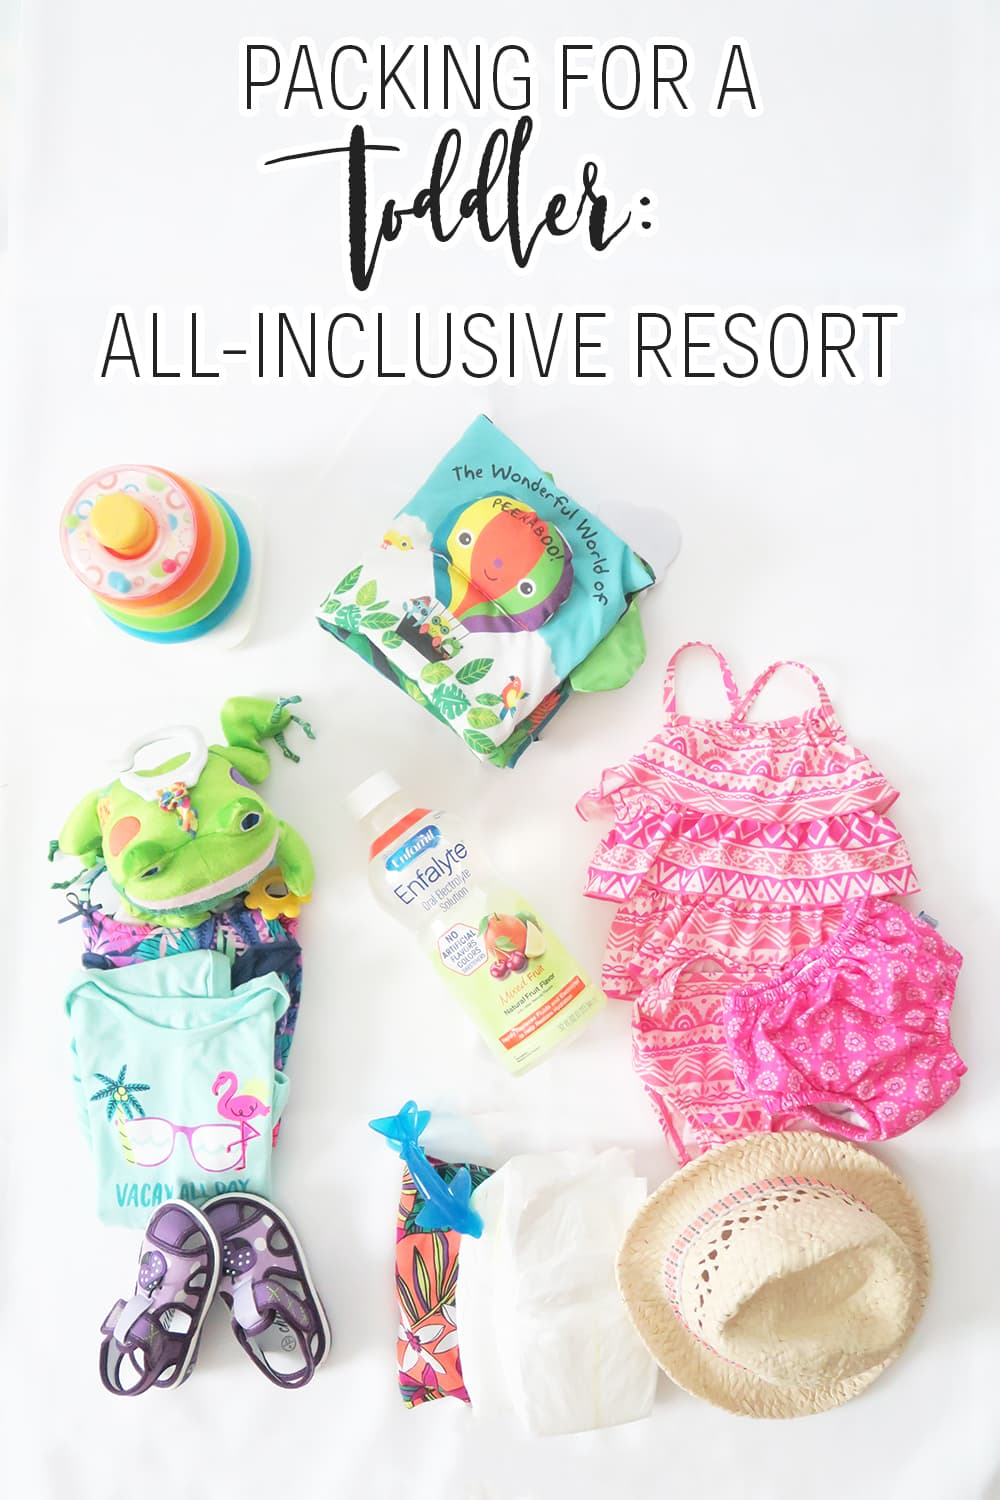 Looking for tips on traveling with toddlers? You've come to the right place! This list will make packing for a toddler for your all-inclusive vacation easy!